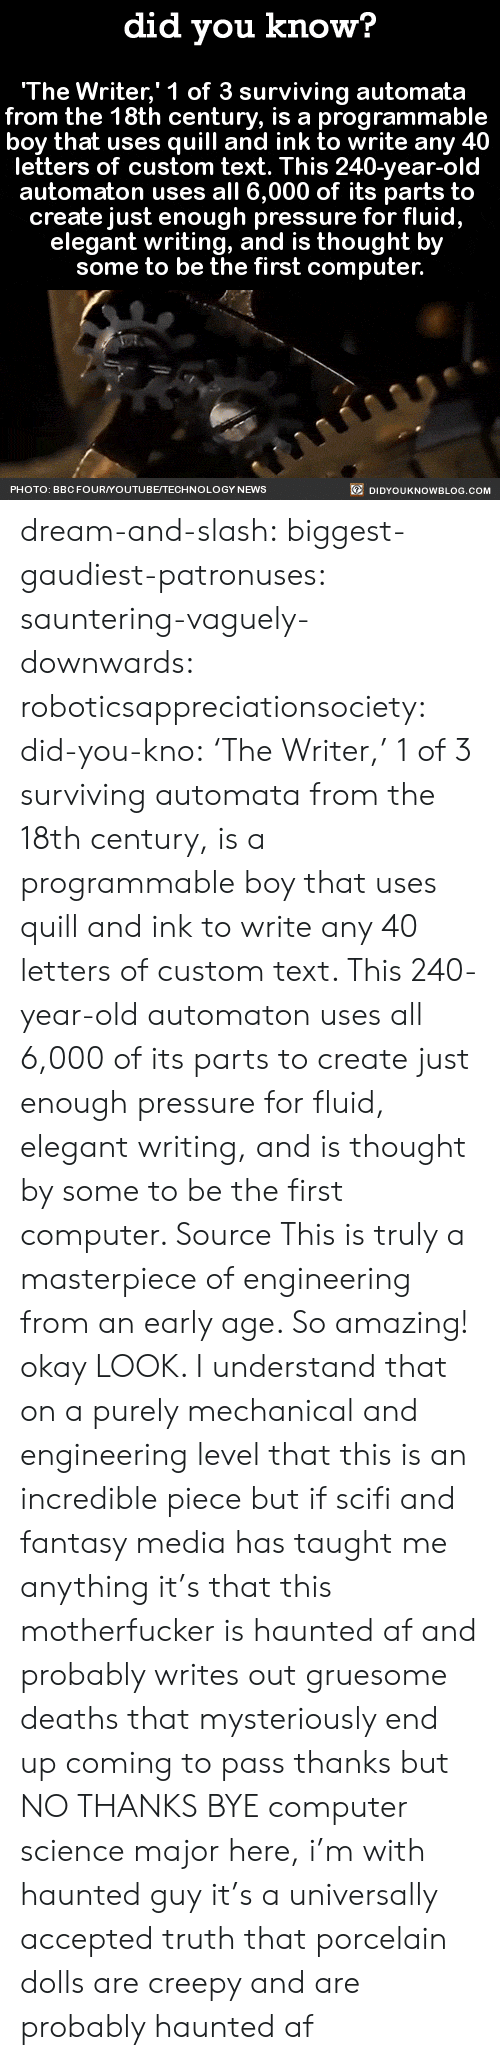 Af, Creepy, and News: did you know?  The Writer,' 1 of 3 surviving automata  from the 18th century, is a programma  boy that uses quill and ink to write any 40  letters of custom text. This 240-year-old  automaton uses all 6,000 of its parts to  create just enough pressure for fluid,  elegant writing, and is thought by  some to be the first computer.  PHOTO: BBCFOURYOUTUBE/TECHNOLOGY NEWS  DIDYOUKNOWBLOG.COM dream-and-slash:  biggest-gaudiest-patronuses: sauntering-vaguely-downwards:  roboticsappreciationsociety:  did-you-kno:  'The Writer,' 1 of 3 surviving automata   from the 18th century, is a programmable  boy that uses quill and ink to write any 40  letters of custom text. This 240-year-old  automaton uses all 6,000 of its parts to  create just enough pressure for fluid,  elegant writing, and is thought by  some to be the first computer.  Source  This is truly a masterpiece of engineering from an early age. So amazing!  okay LOOK. I understand that on a purely mechanical and engineering level that this is an incredible piece but if scifi and fantasy media has taught me anything it's that this motherfucker is haunted af and probably writes out gruesome deaths that mysteriously end up coming to pass thanks but NO THANKS BYE  computer science major here, i'm with haunted guy   it's a universally accepted truth that porcelain dolls are creepy and are probably haunted af